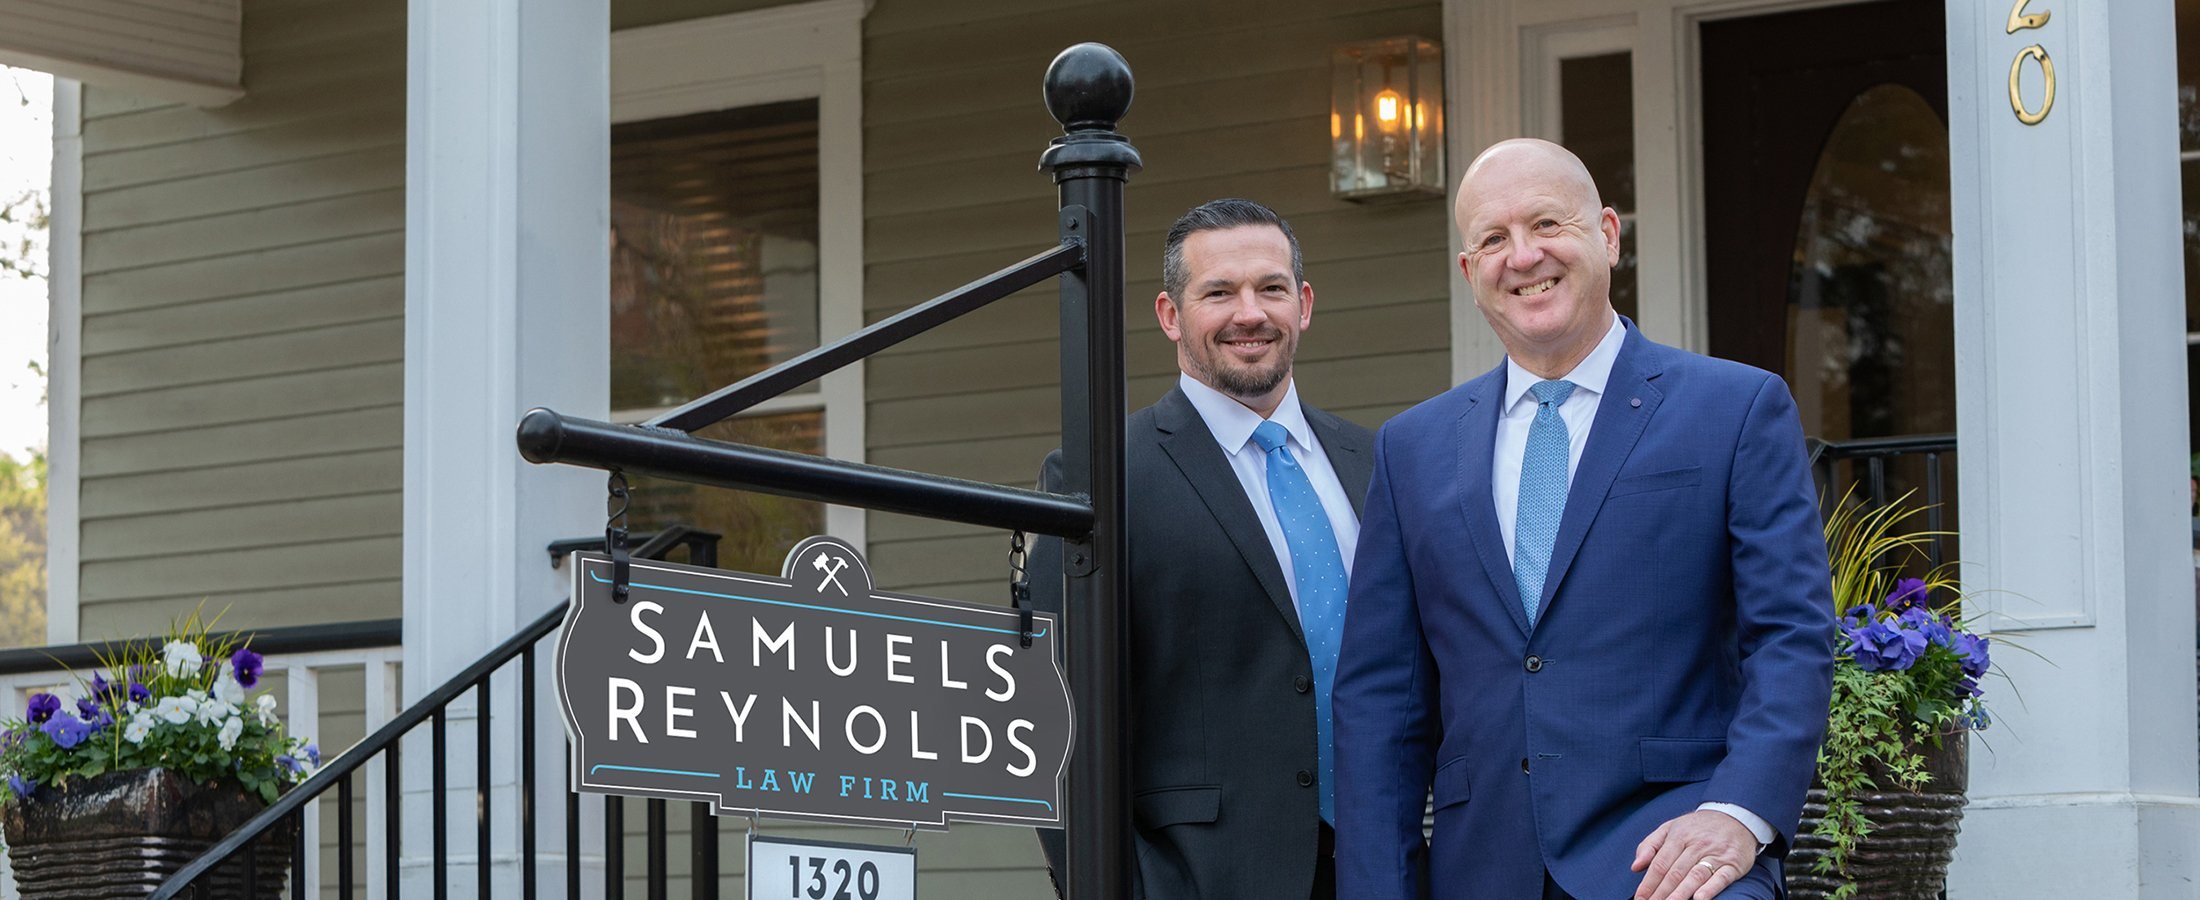 Samuels Reynolds Law Firm